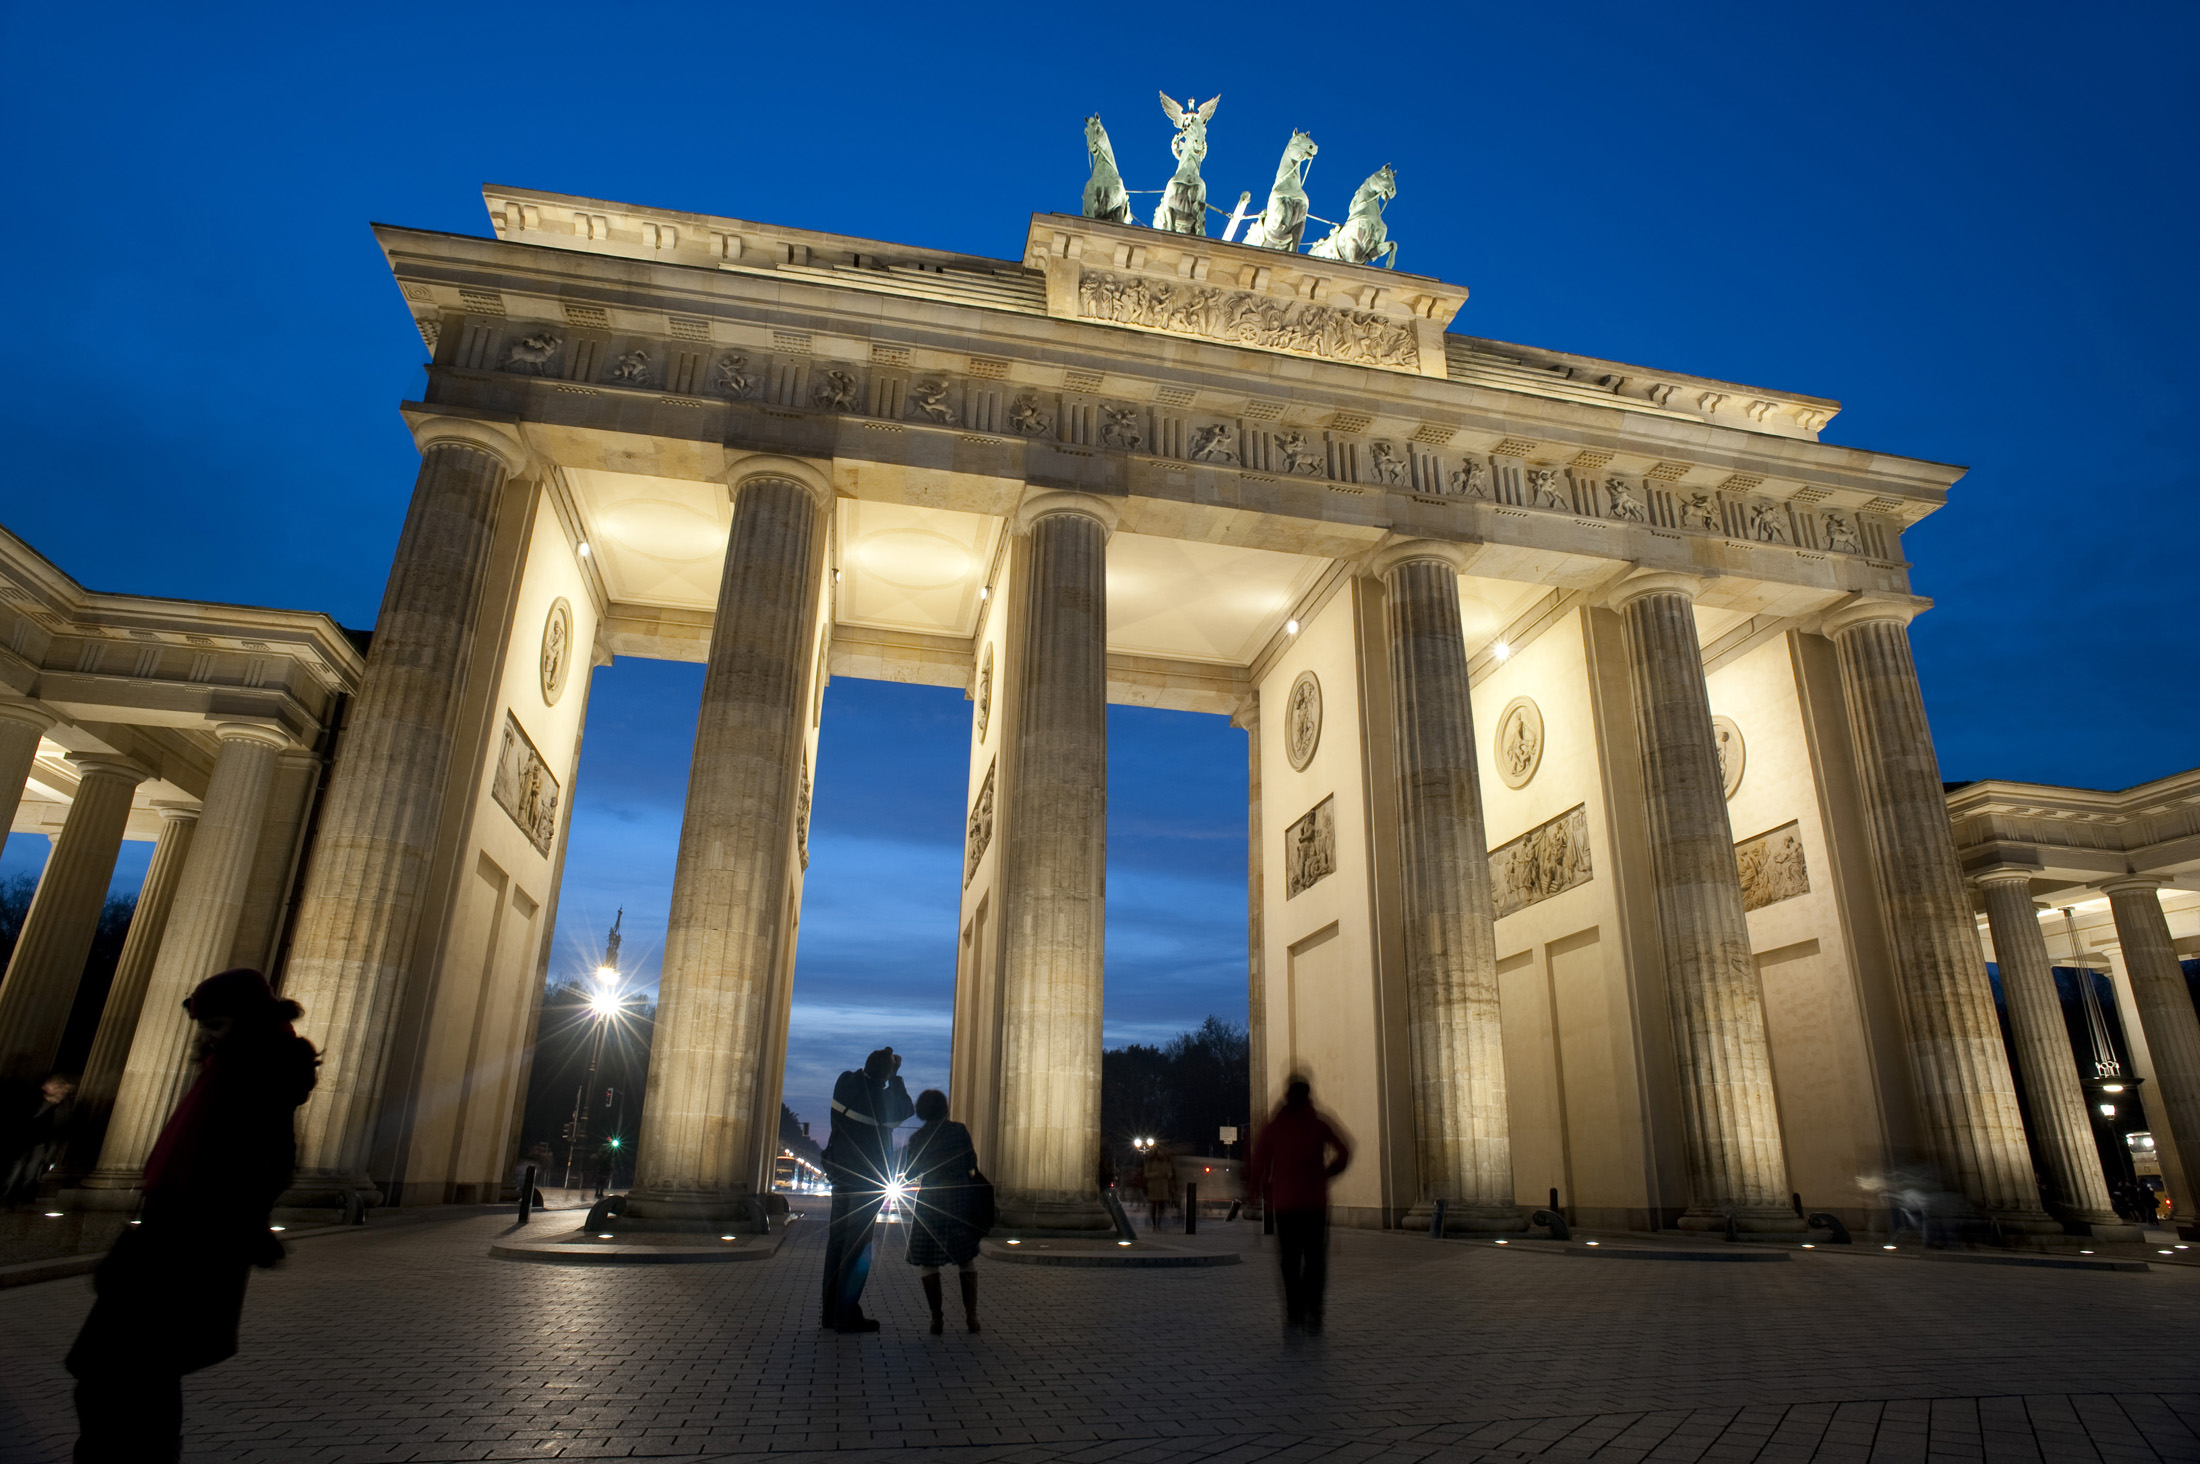 a floodlit view of the brandenburg gate at night